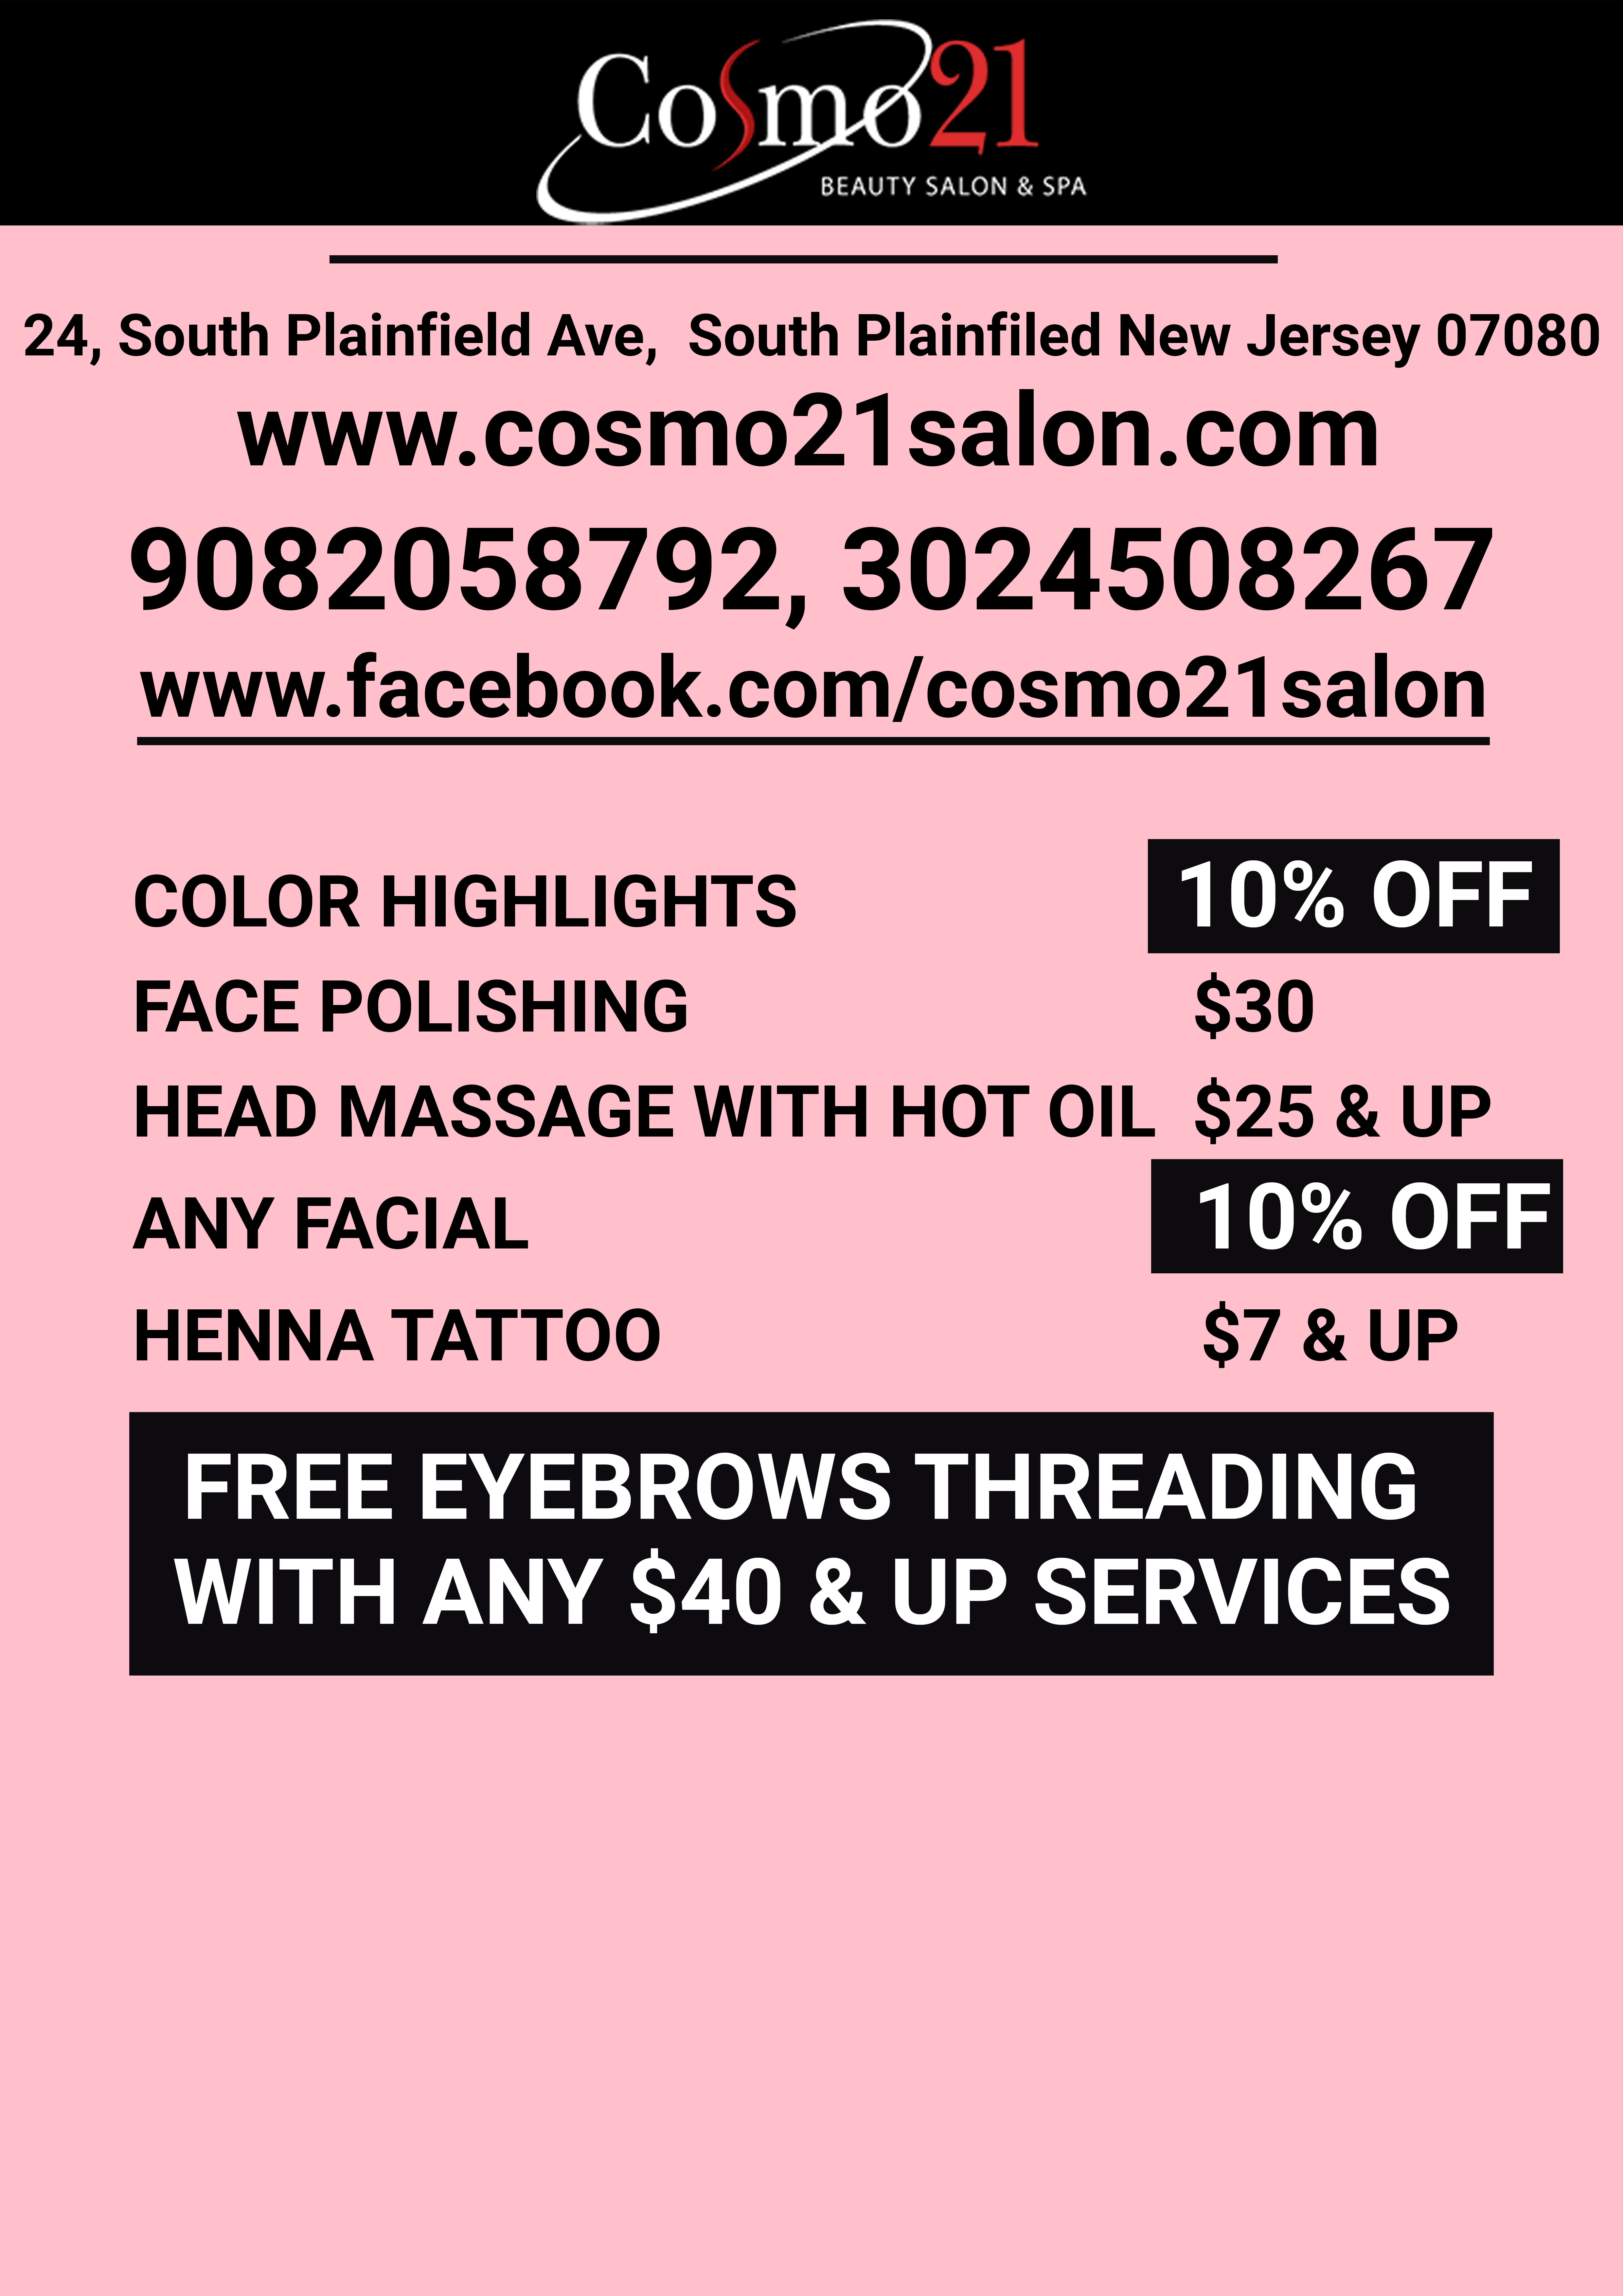 Visit Cosmo21 Beauty Salon Spa And Enhance Your Beauty At Best